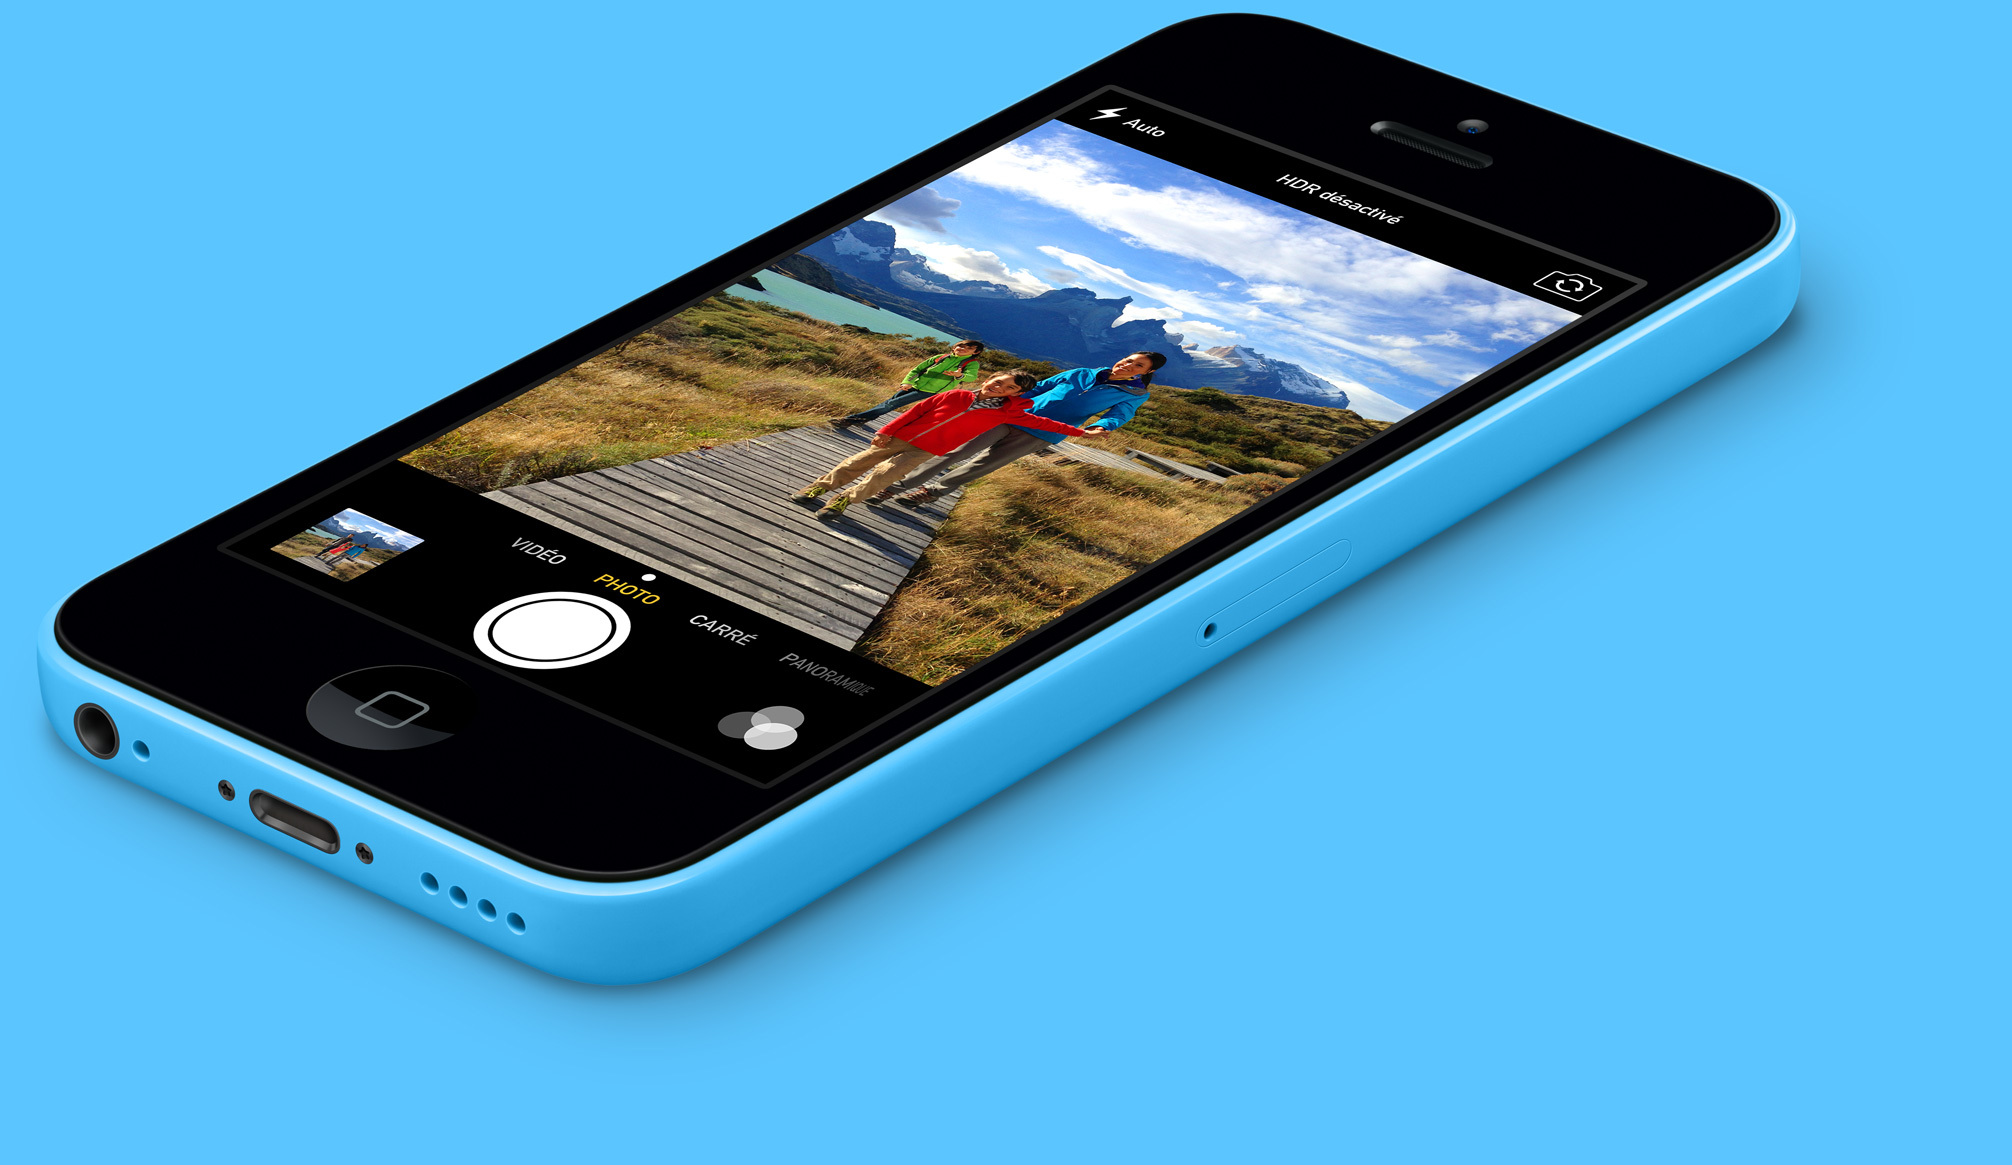 apple iphone 5c 32gb 4g lte with isight camera in blue for. Black Bedroom Furniture Sets. Home Design Ideas